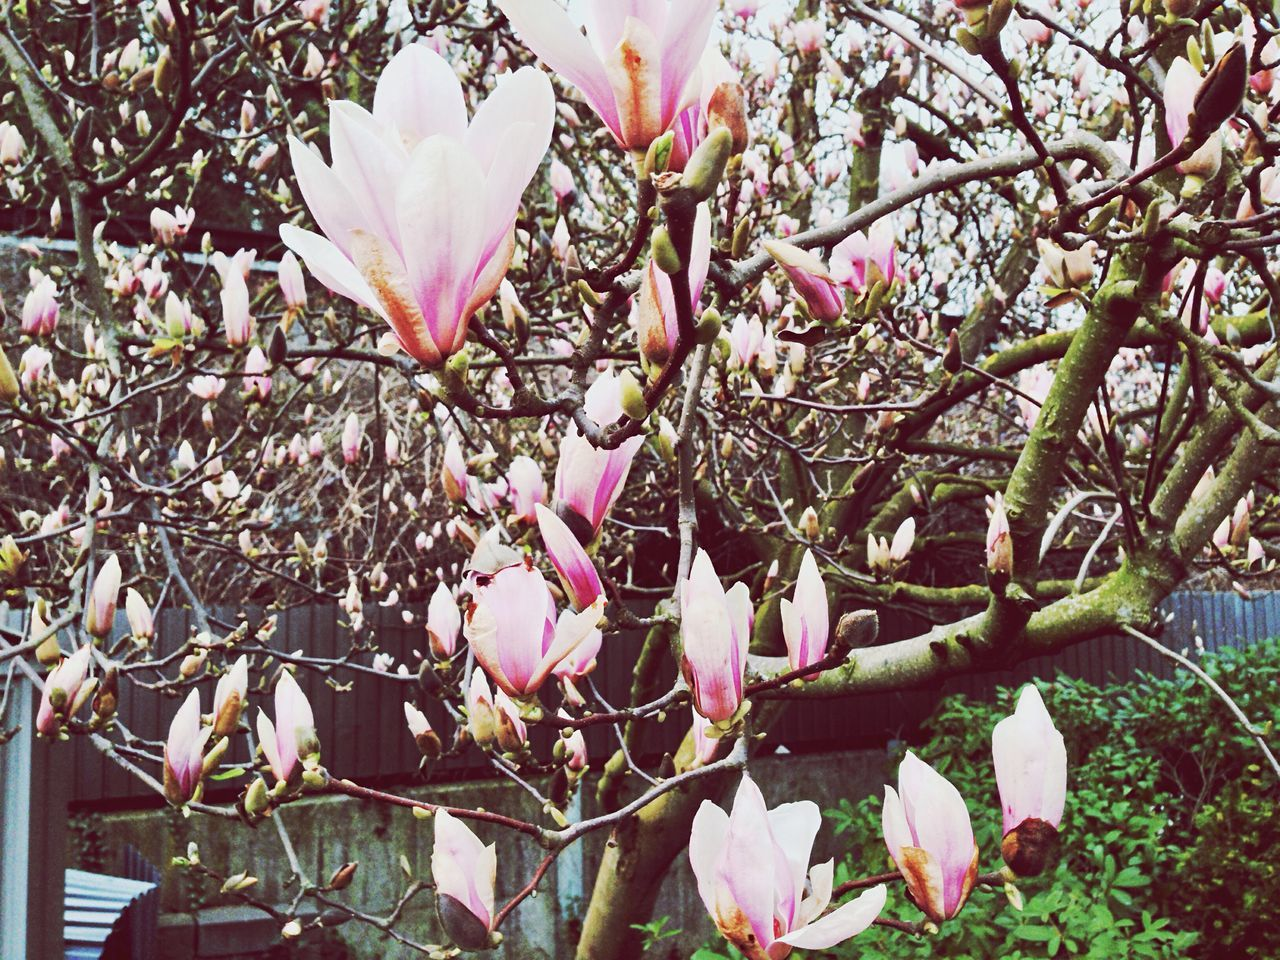 flower, pink color, fragility, blossom, beauty in nature, tree, growth, branch, freshness, springtime, nature, magnolia, petal, botany, no people, day, orchard, outdoors, twig, flower head, blooming, close-up, plum blossom, plant